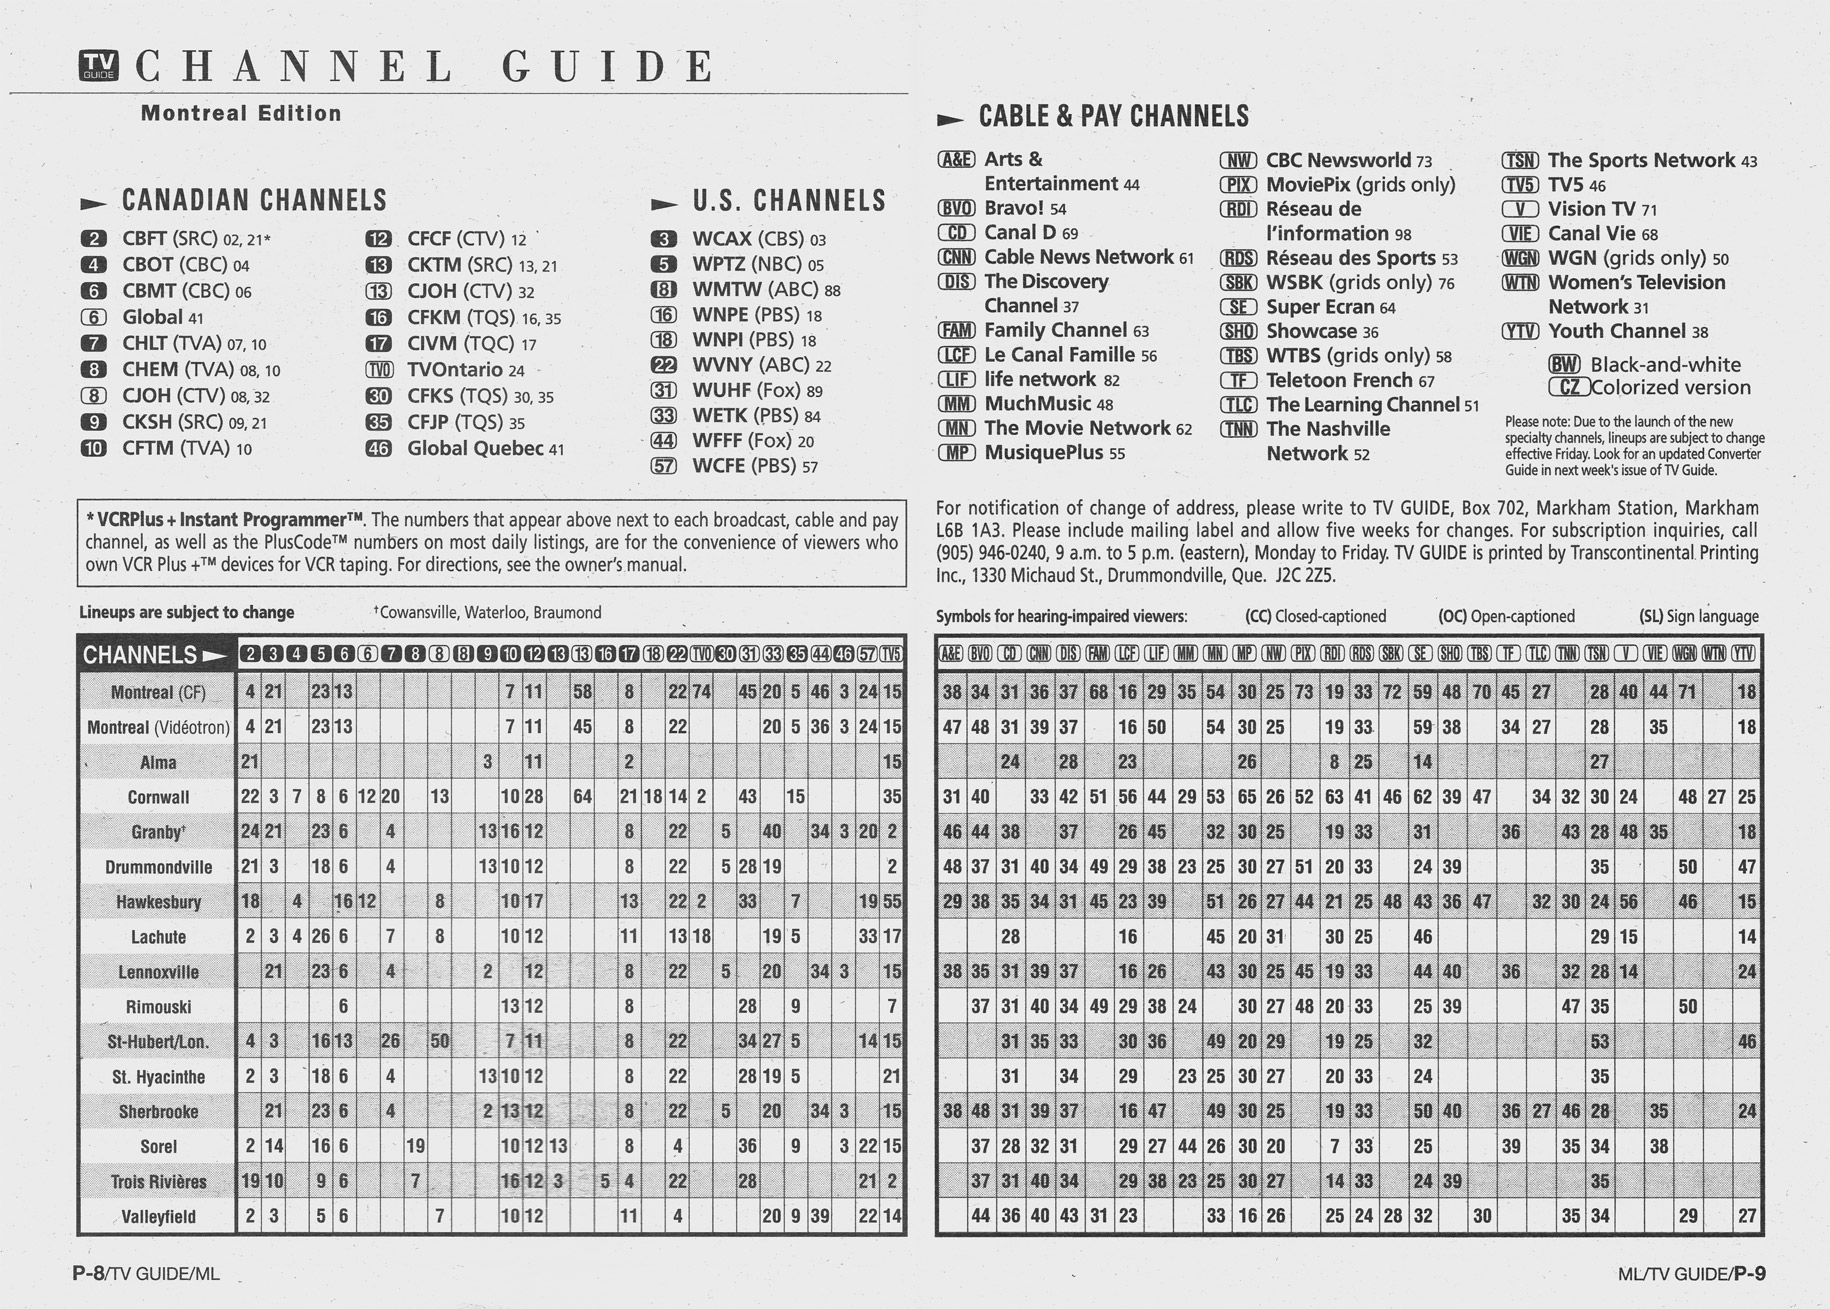 TV Guide October 25 1997 Montreal Edition Channel Guide